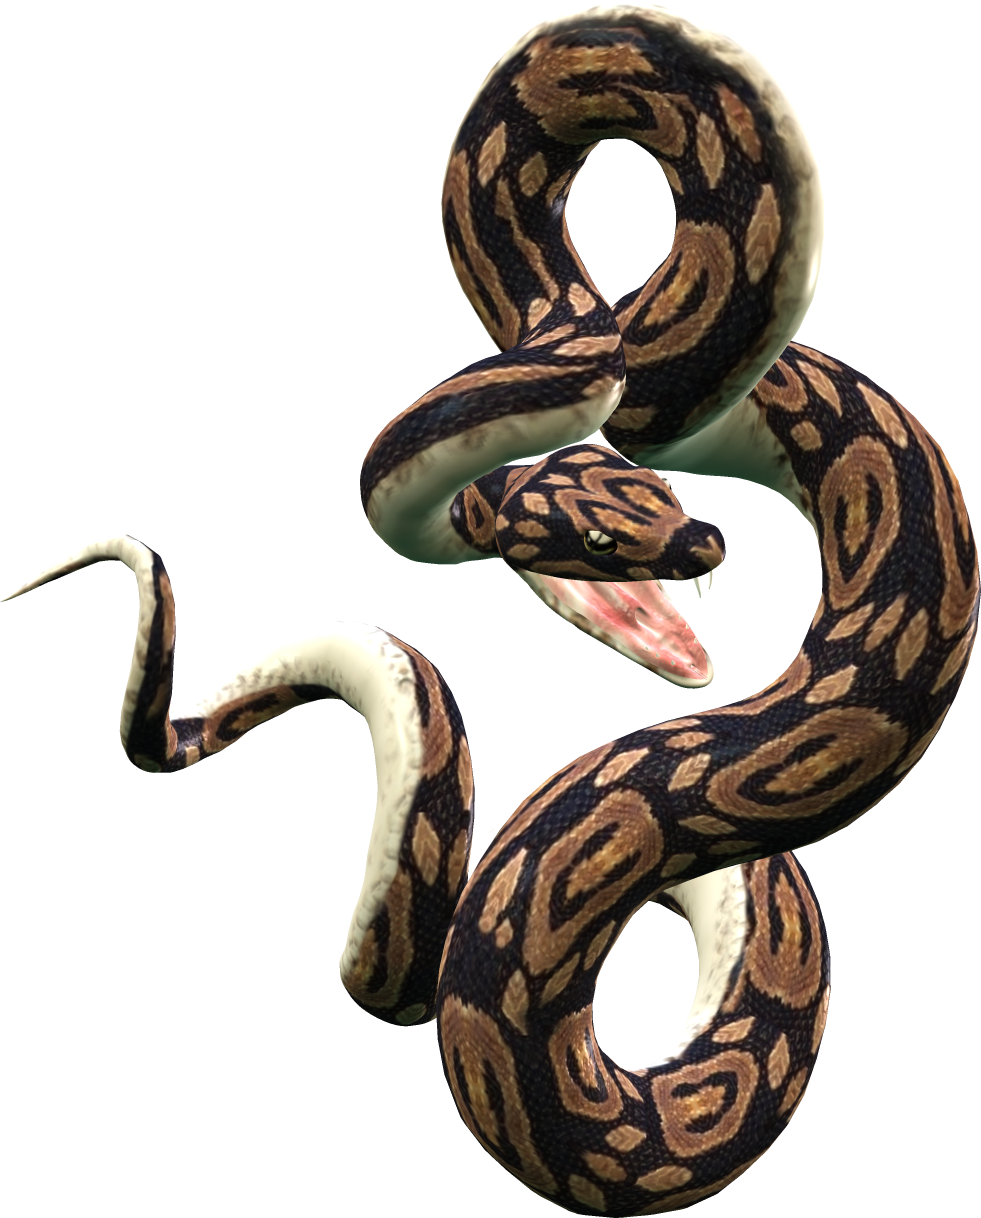 Snake clipart boa constrictor. Sticker by blade aks